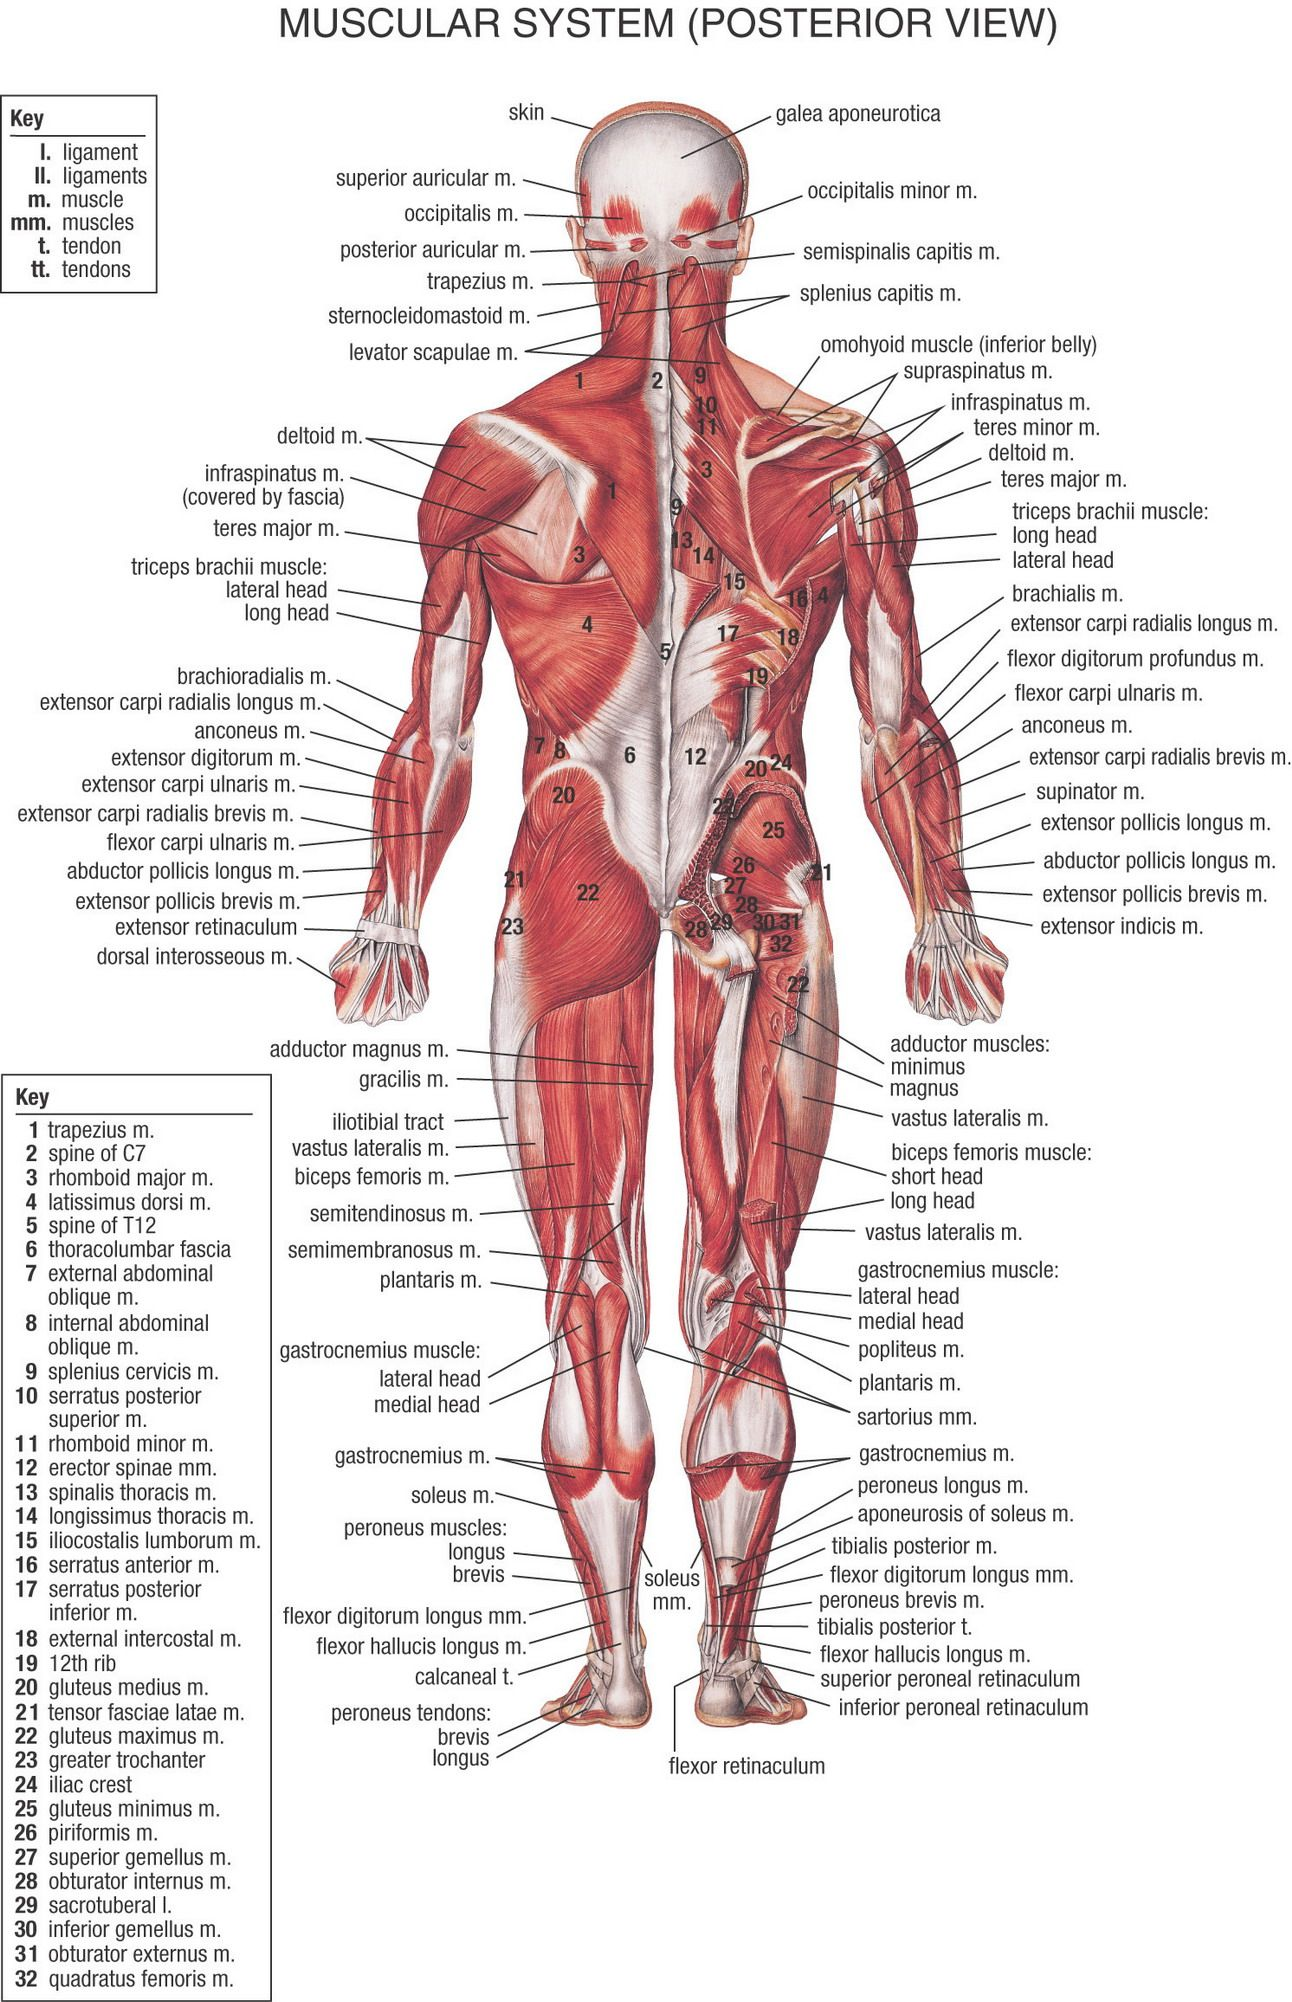 Muscular system posterior view anatomy physiology pinterest muscular system posterior view ccuart Choice Image